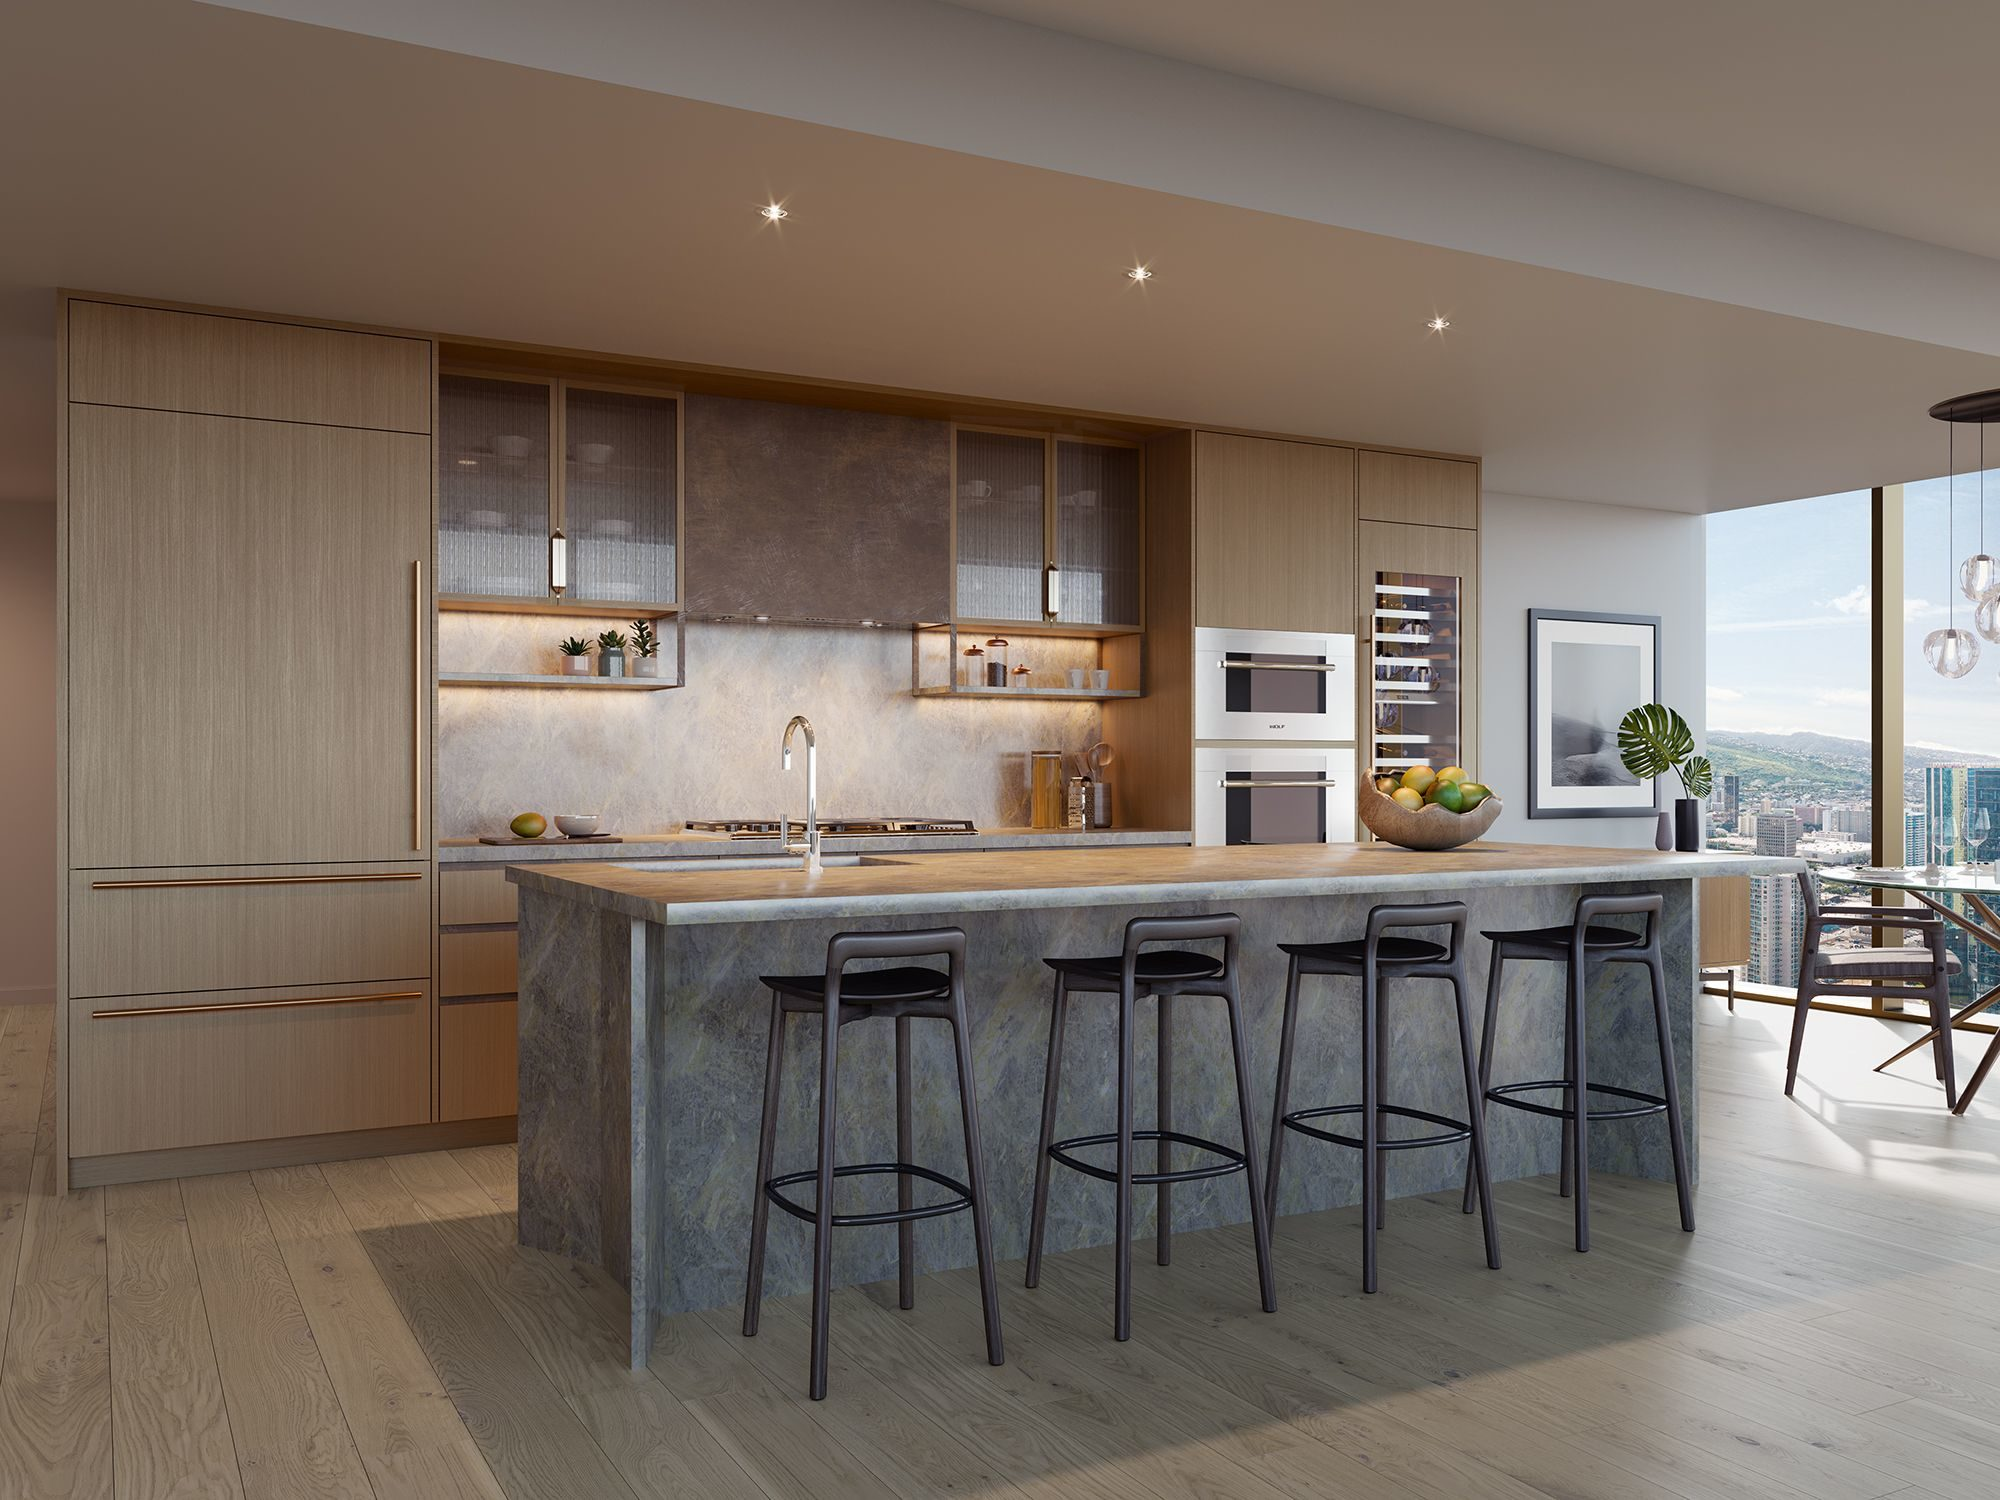 Kitchen in light color scheme featuring custom designed island with sophisticated fixtures and finishes